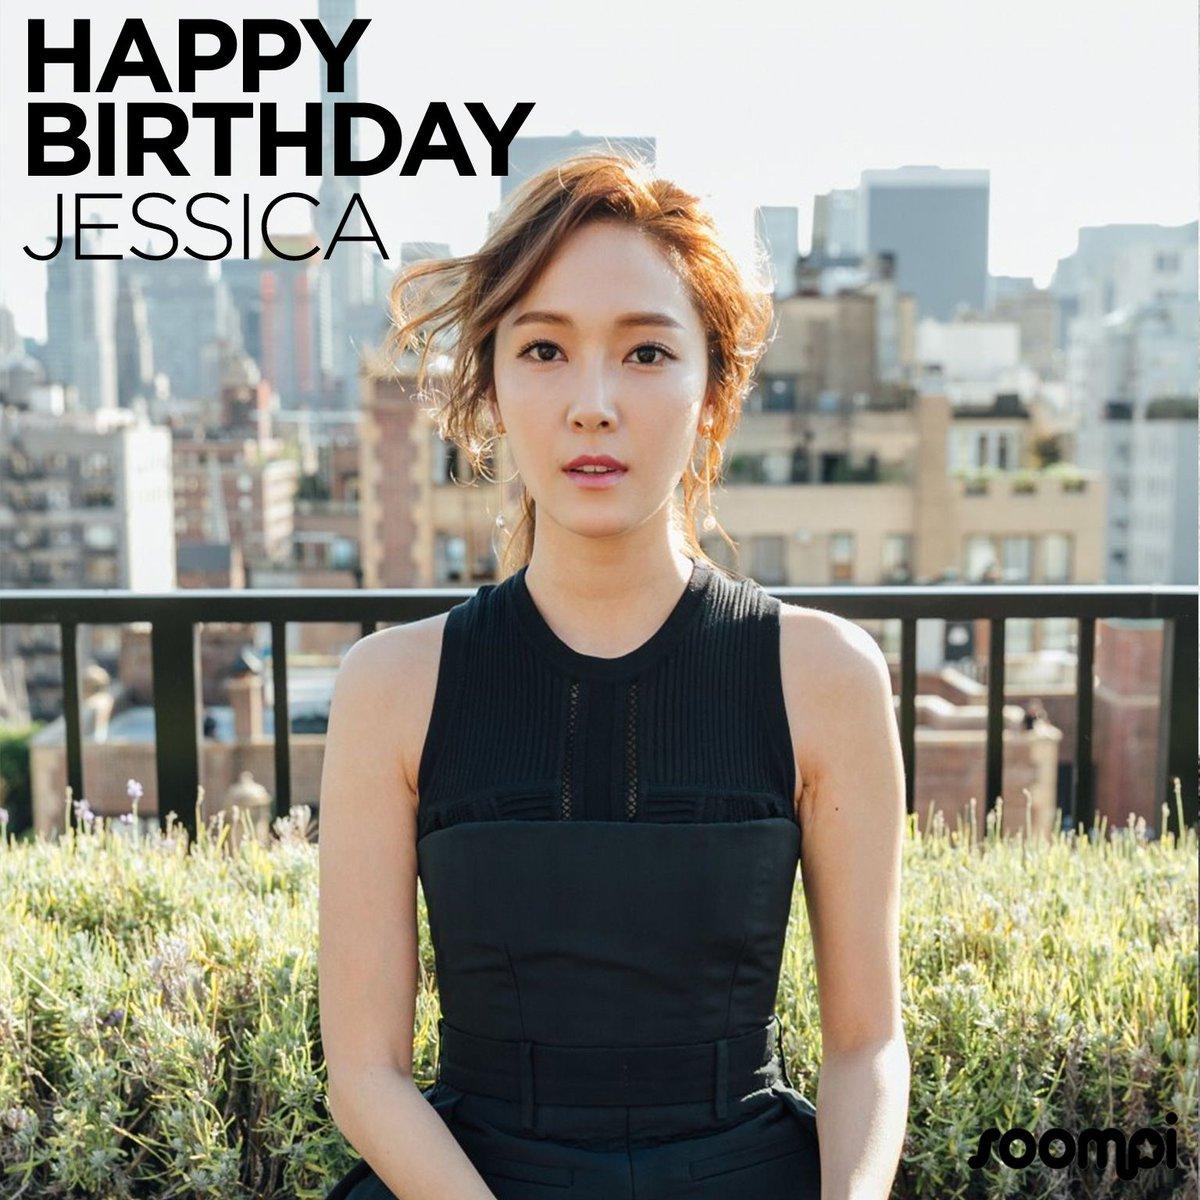 Happy Birthday to Jessica! #HappyJessicaDay  http:// ln.is/4kBAz      by #xmclingybae via @c0nveypic.twitter.com/N7qBA4CZp1